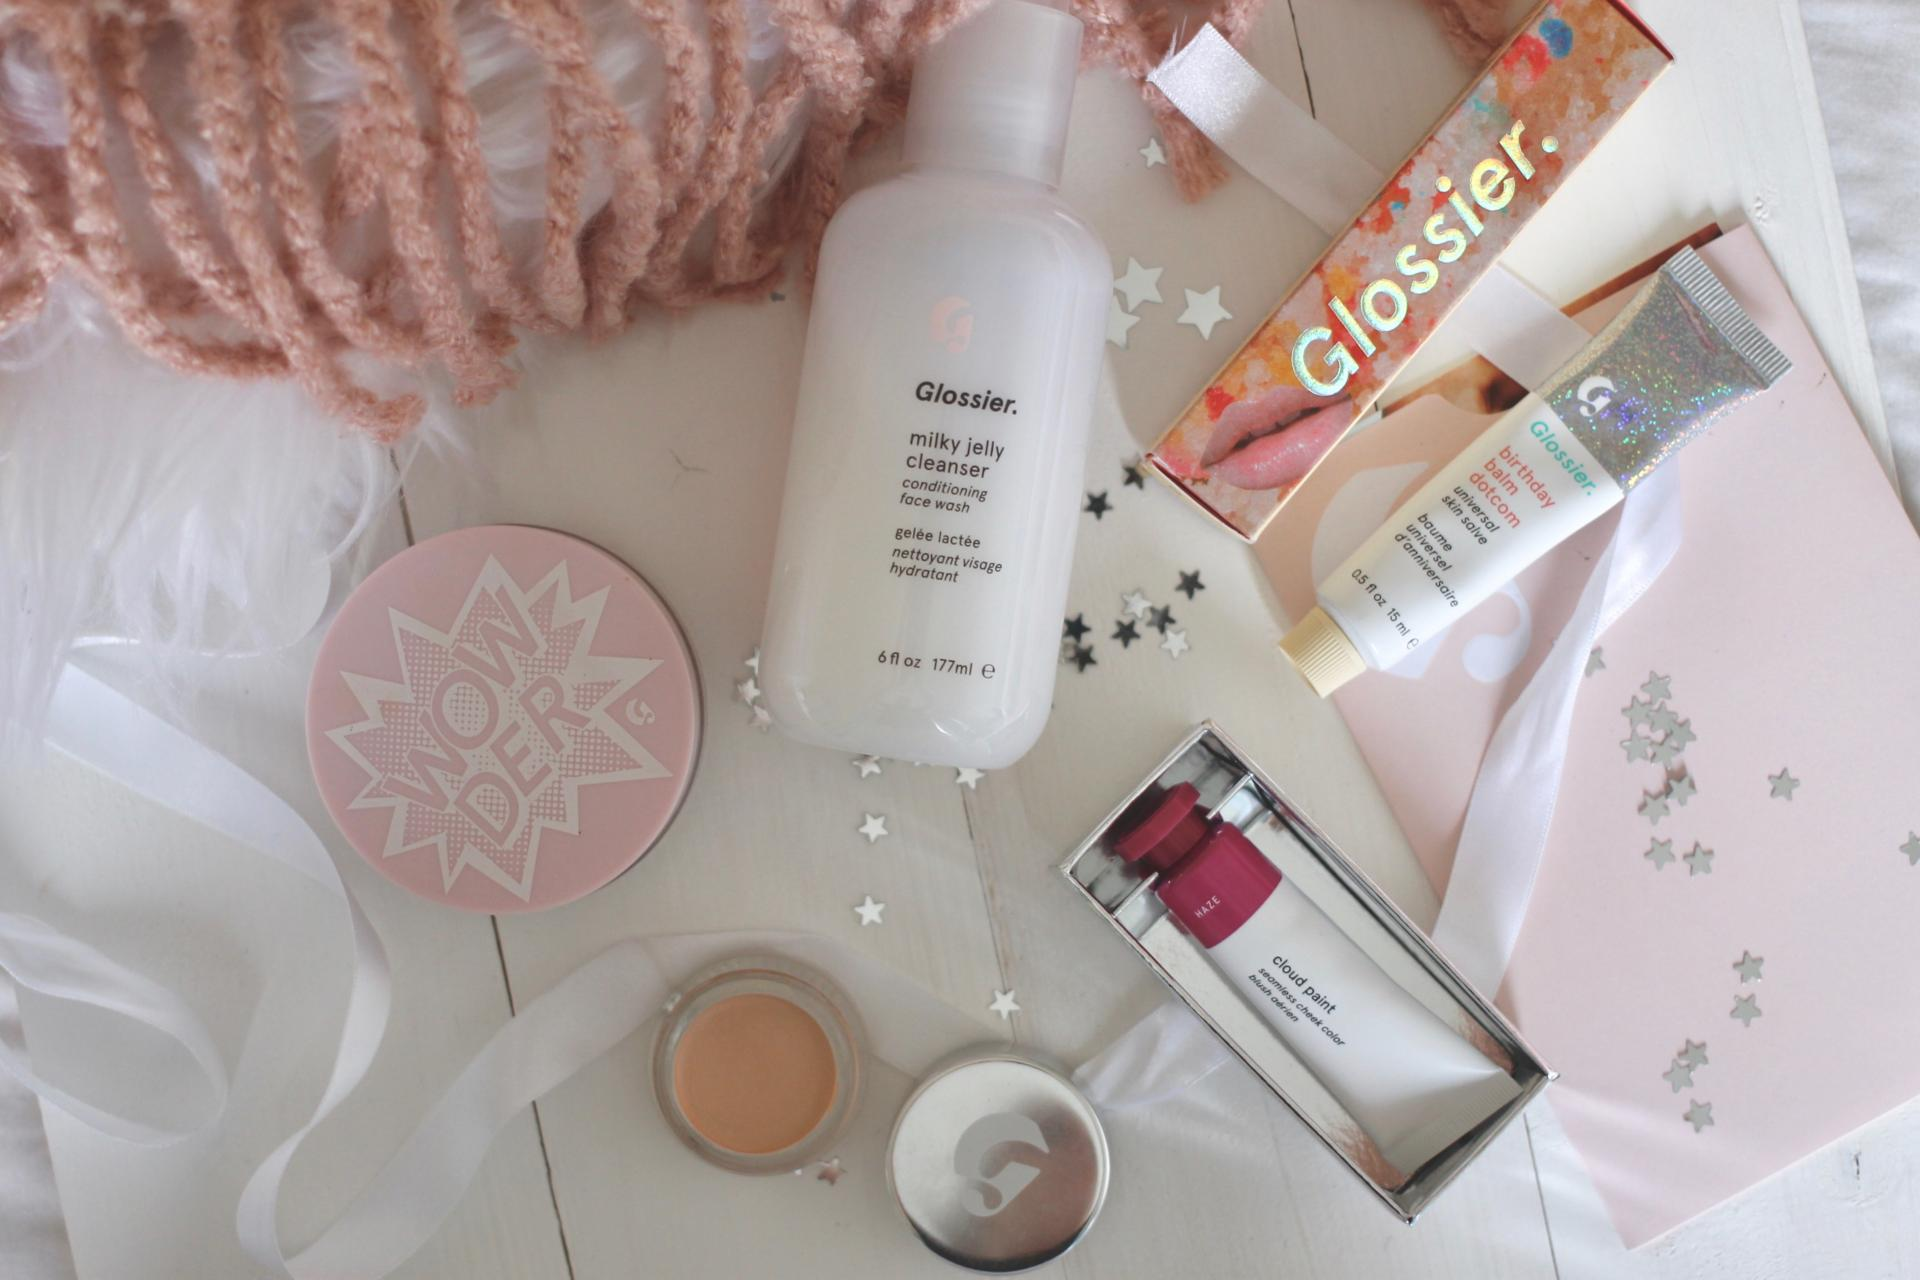 A Very, Very late Glossier Order